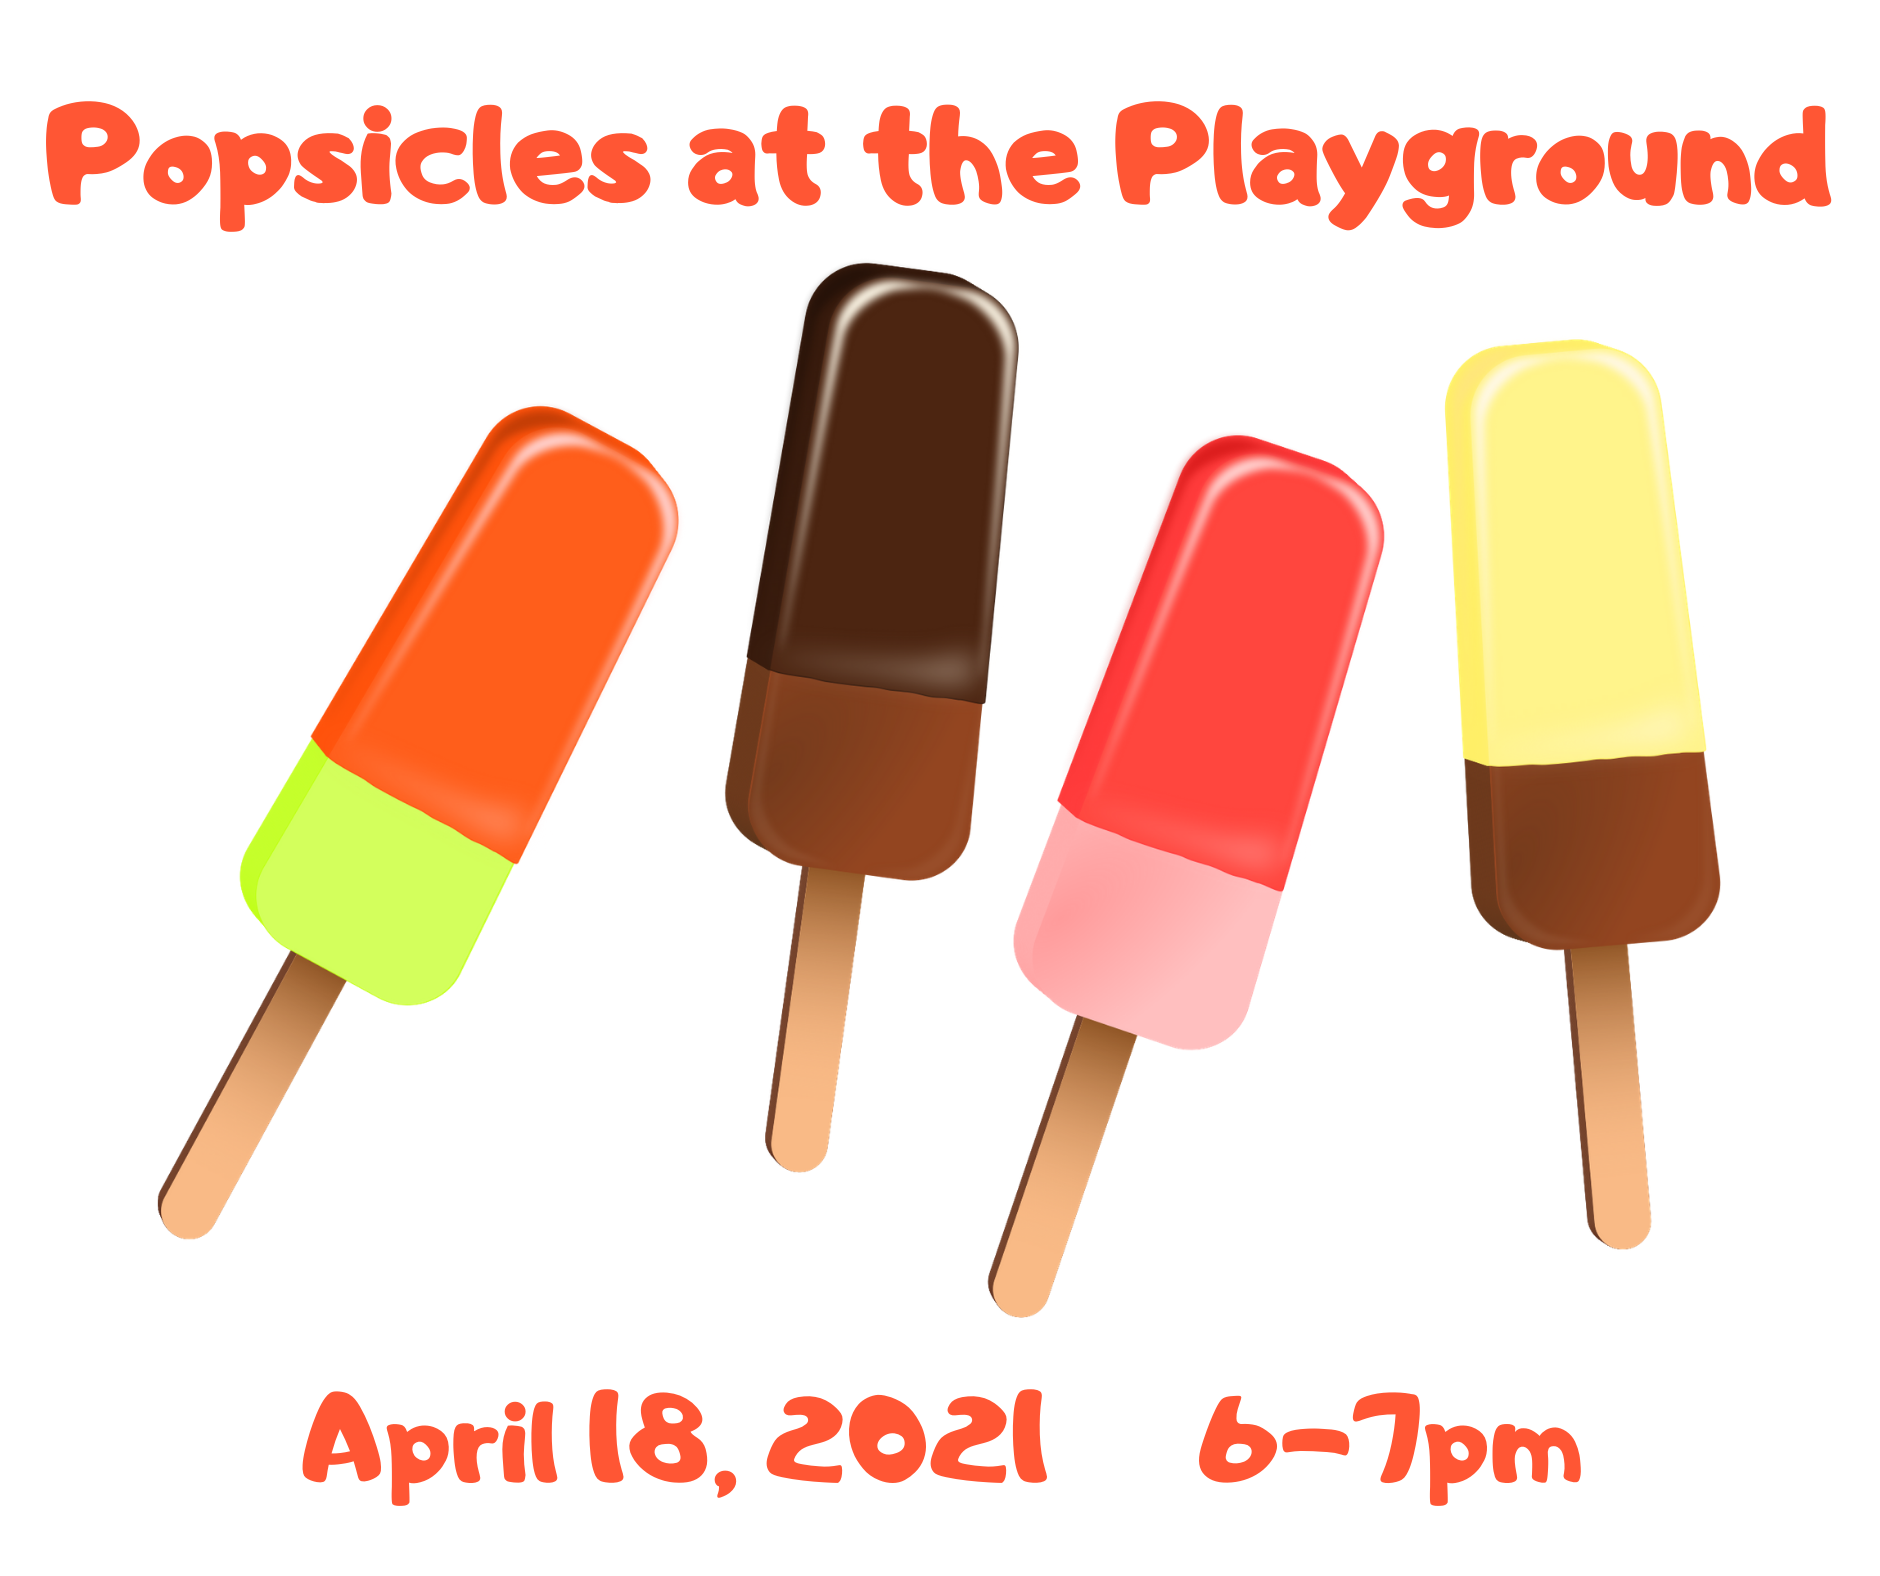 Popsicles at the playground